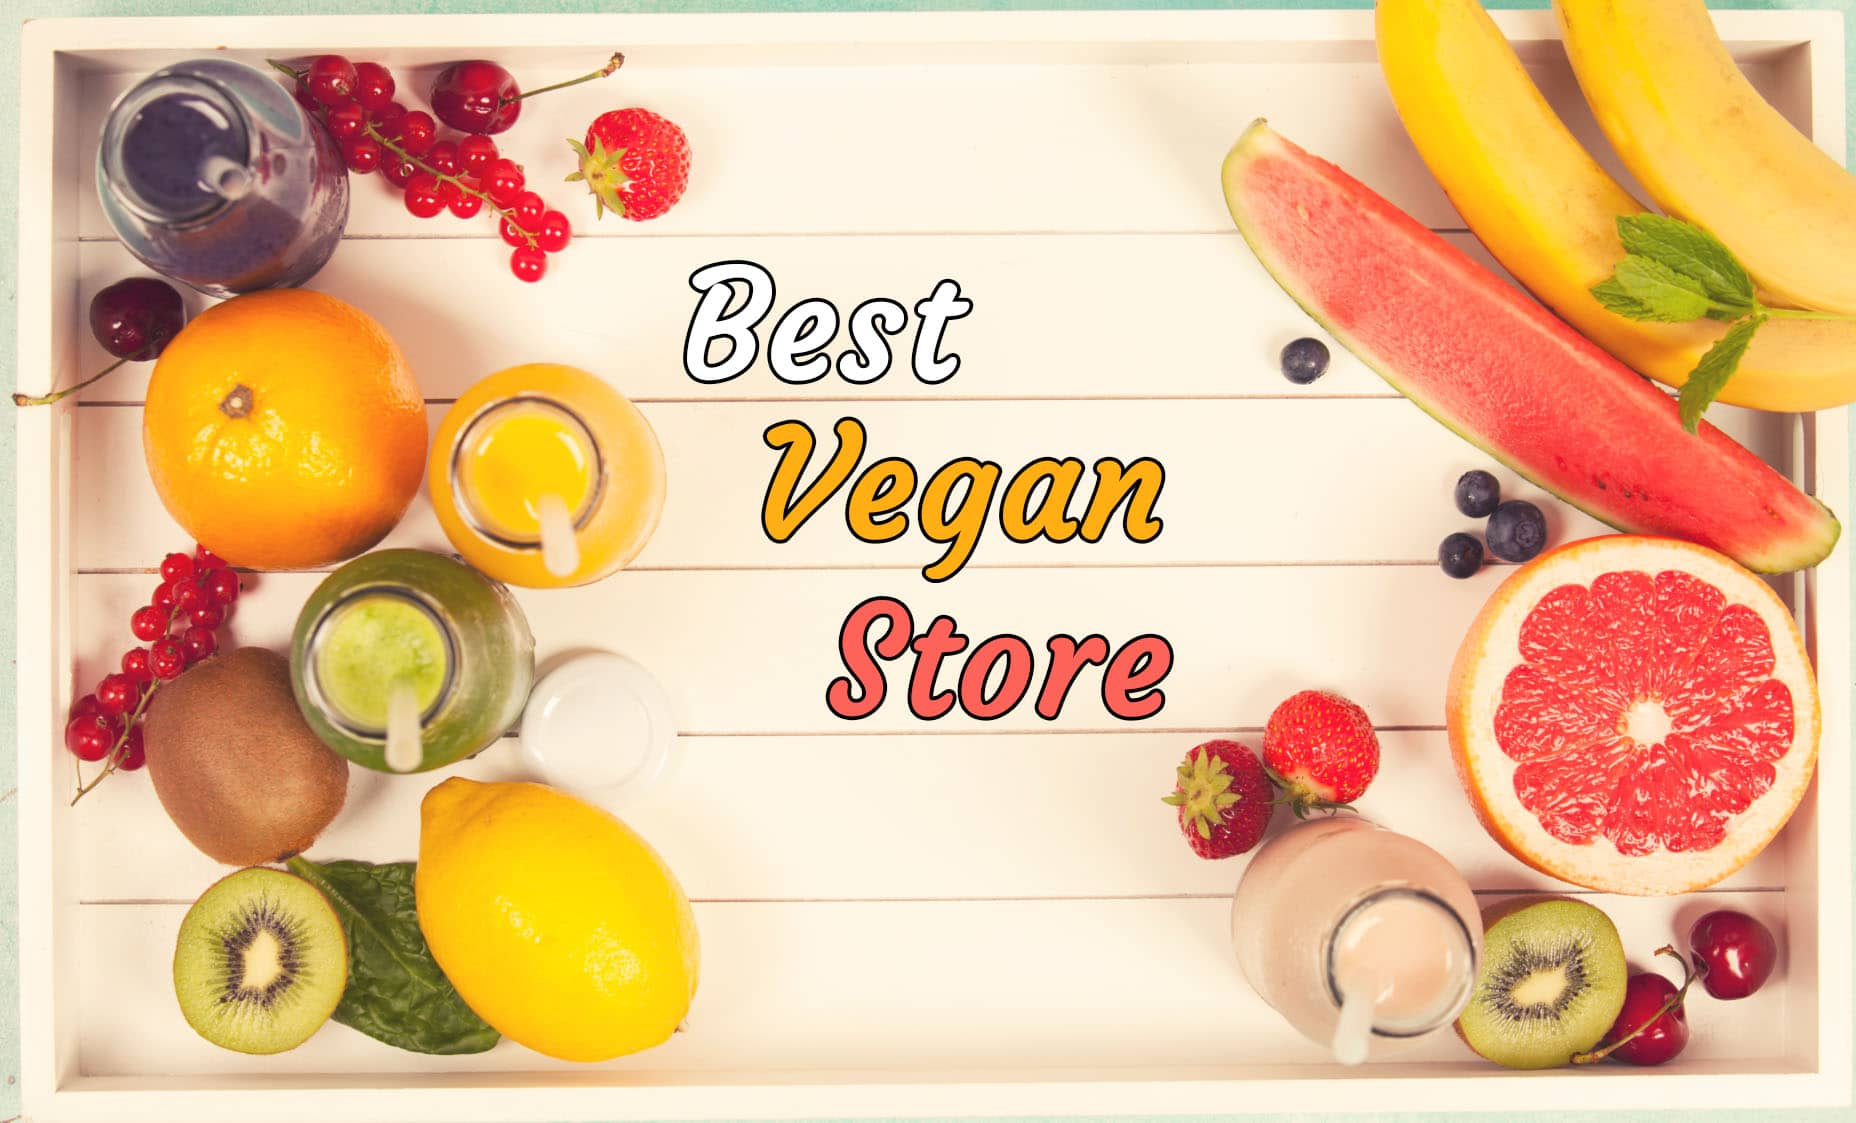 Best Vegan Store